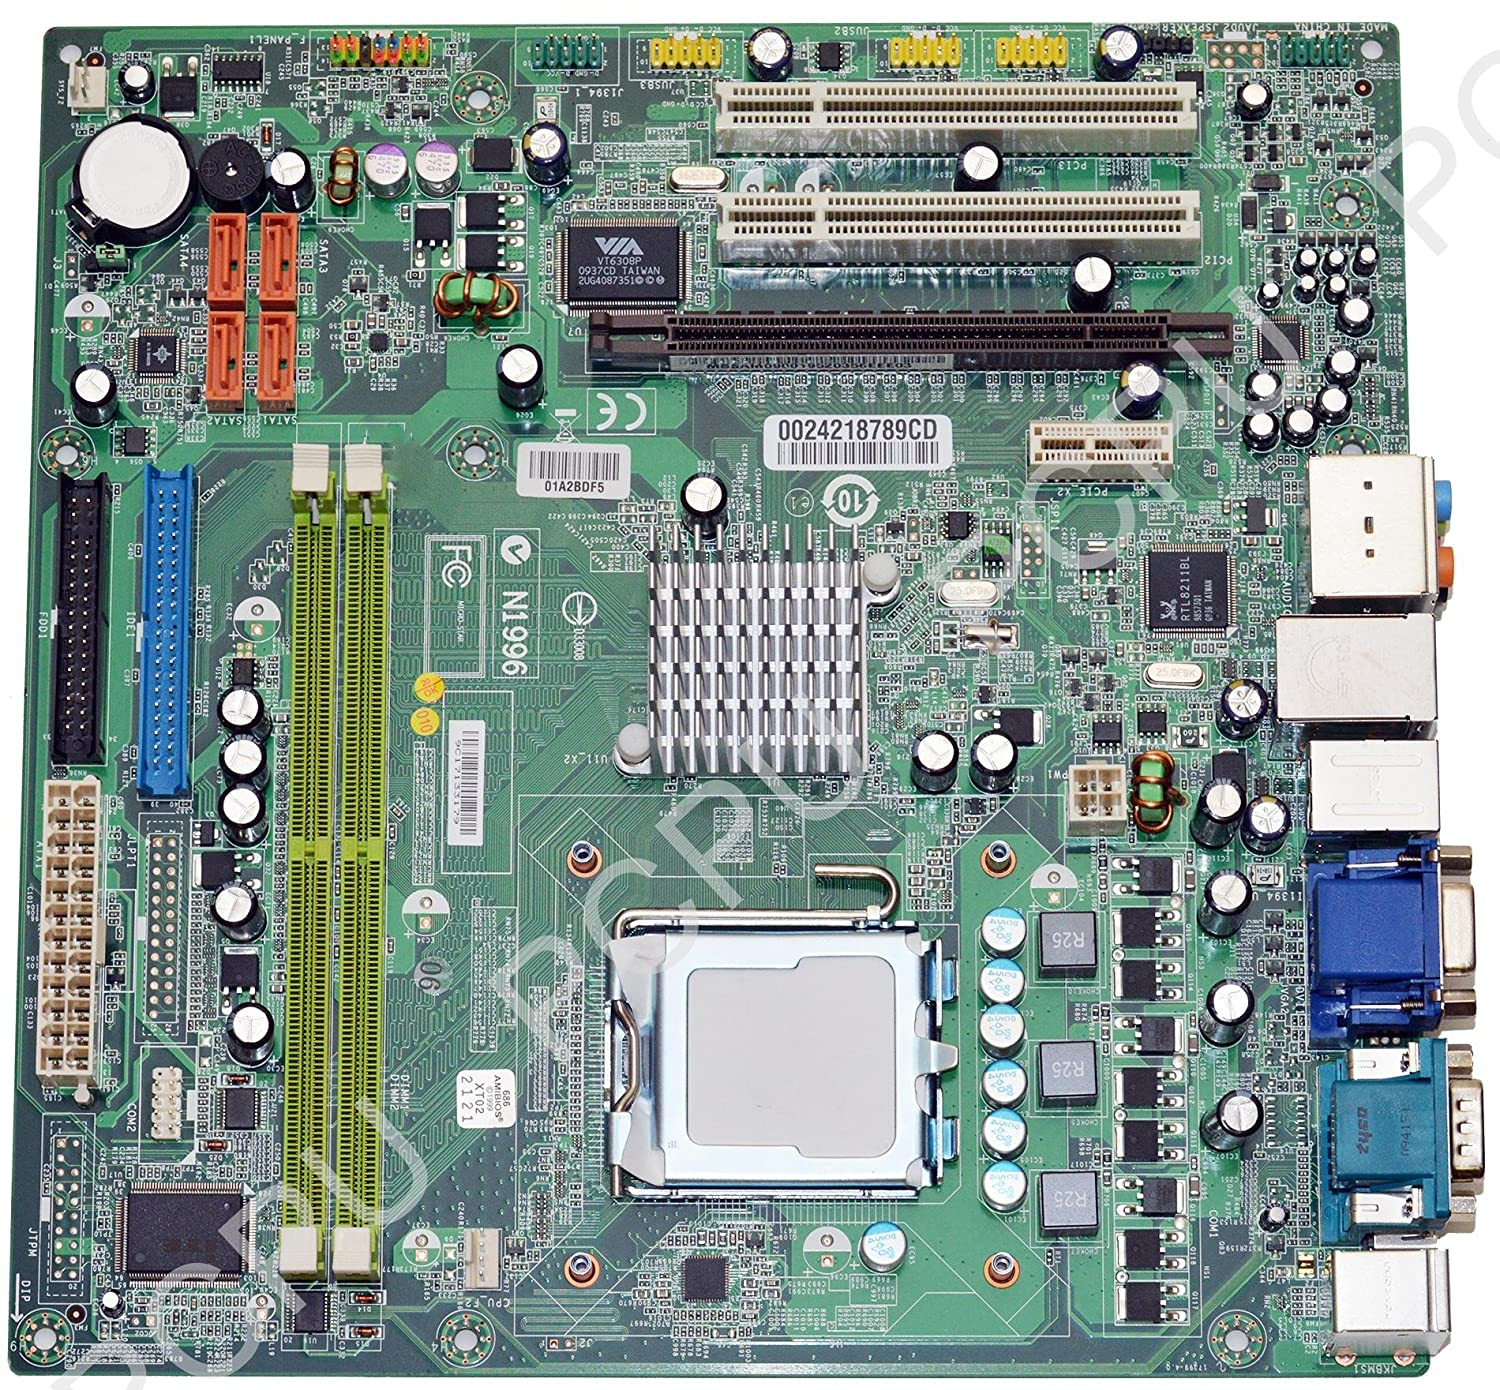 Ht2000 Motherboard Wiring Diagram Trusted Diagrams Asus Acer Electrical Intel Aspire M1640 Manual Professional